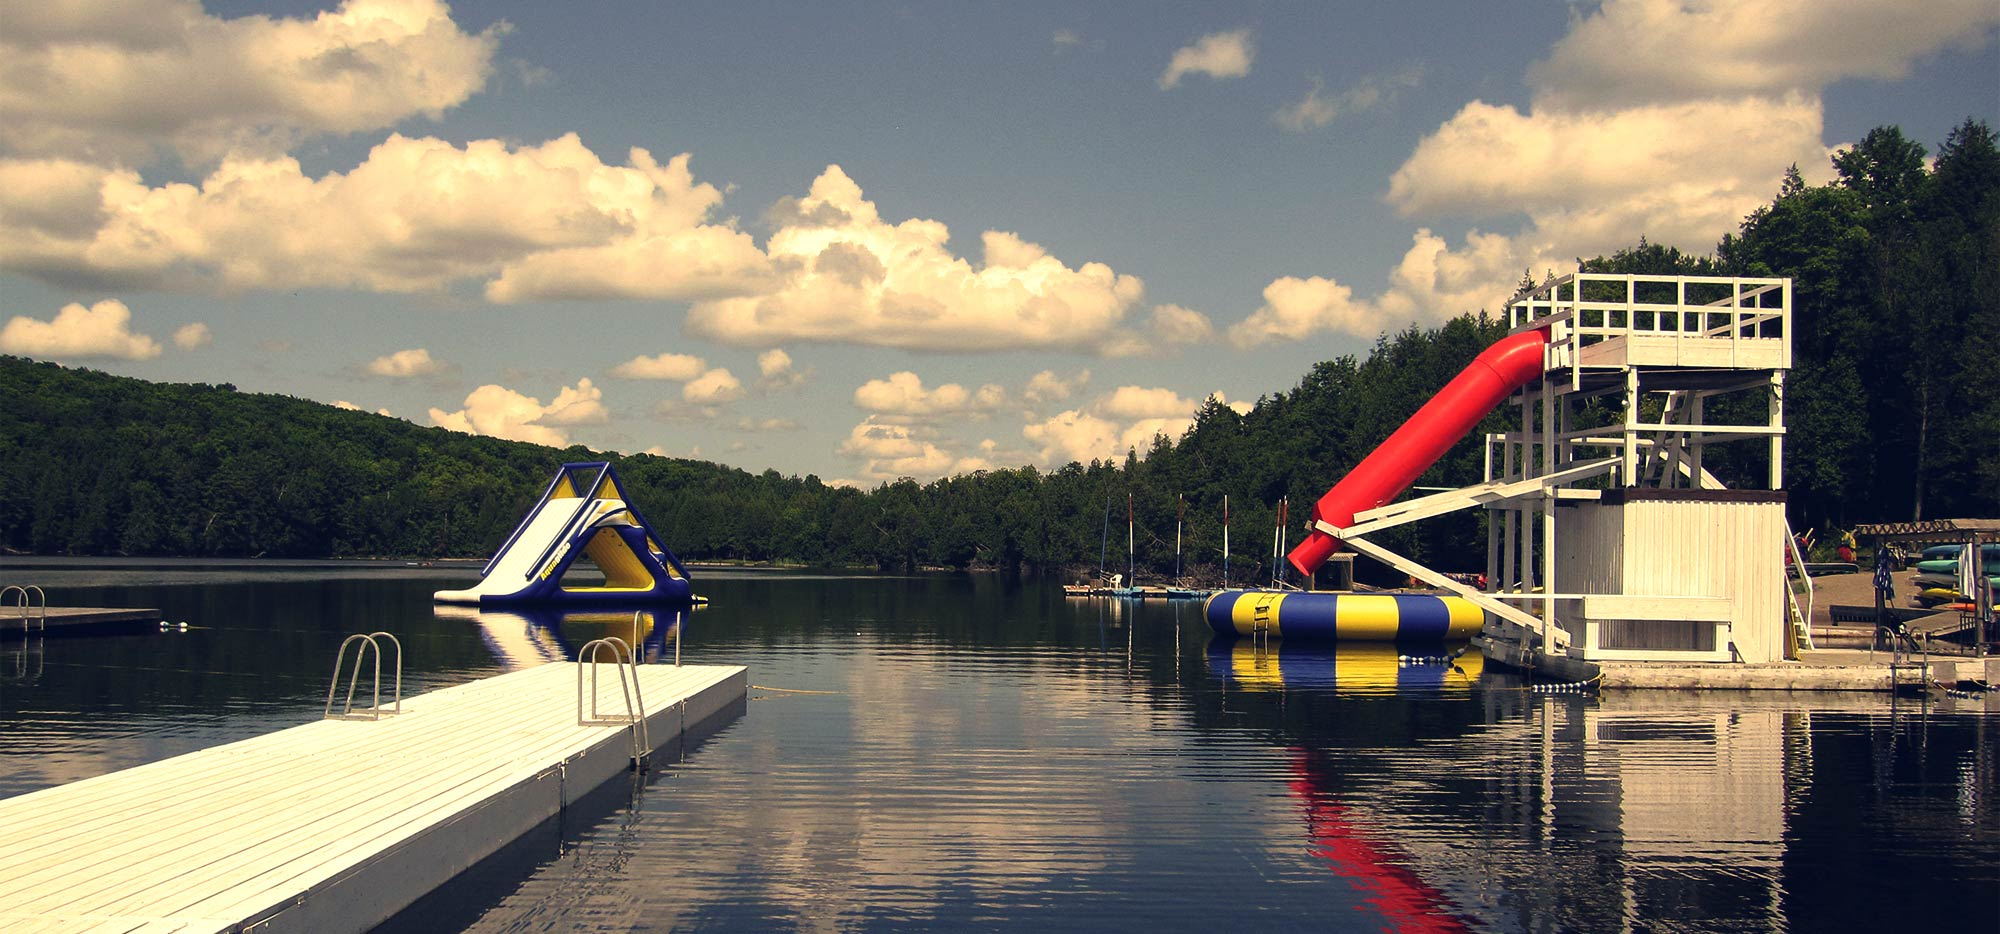 Adult Summer Camps In Canada You Need To Check Out - 10 amazing summer camps for adults in canada